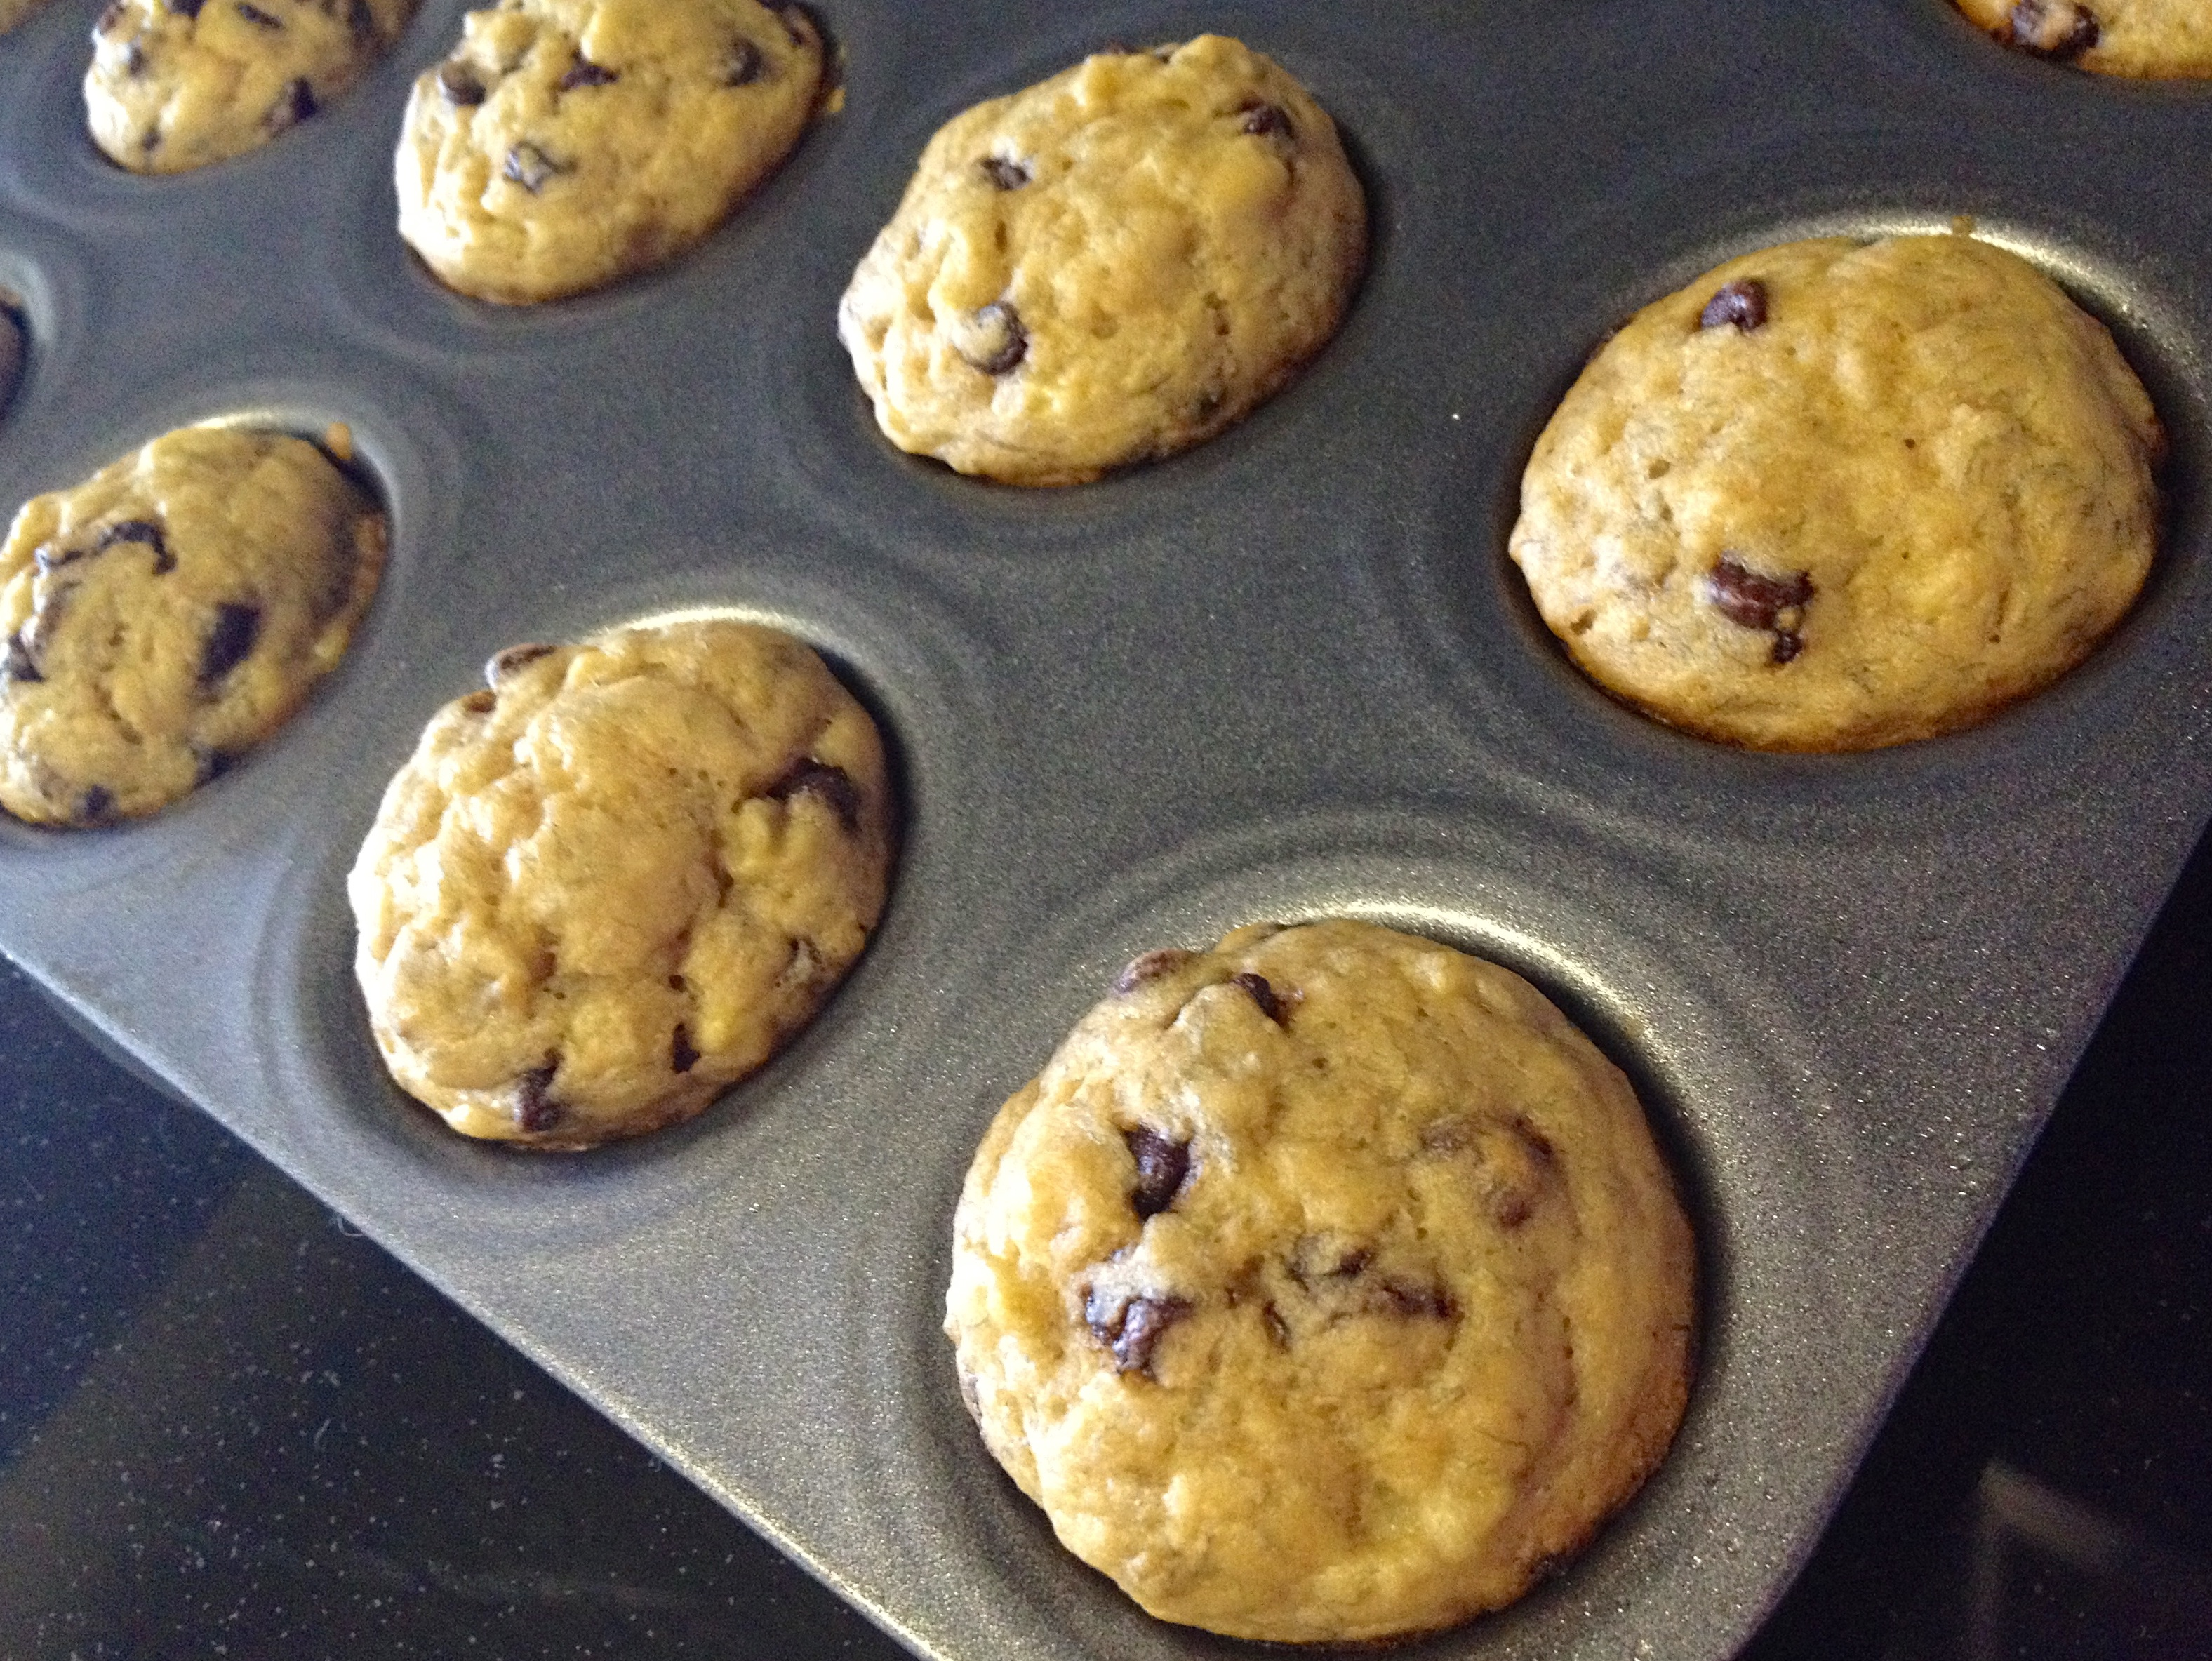 banana mini muffins straight out of oven